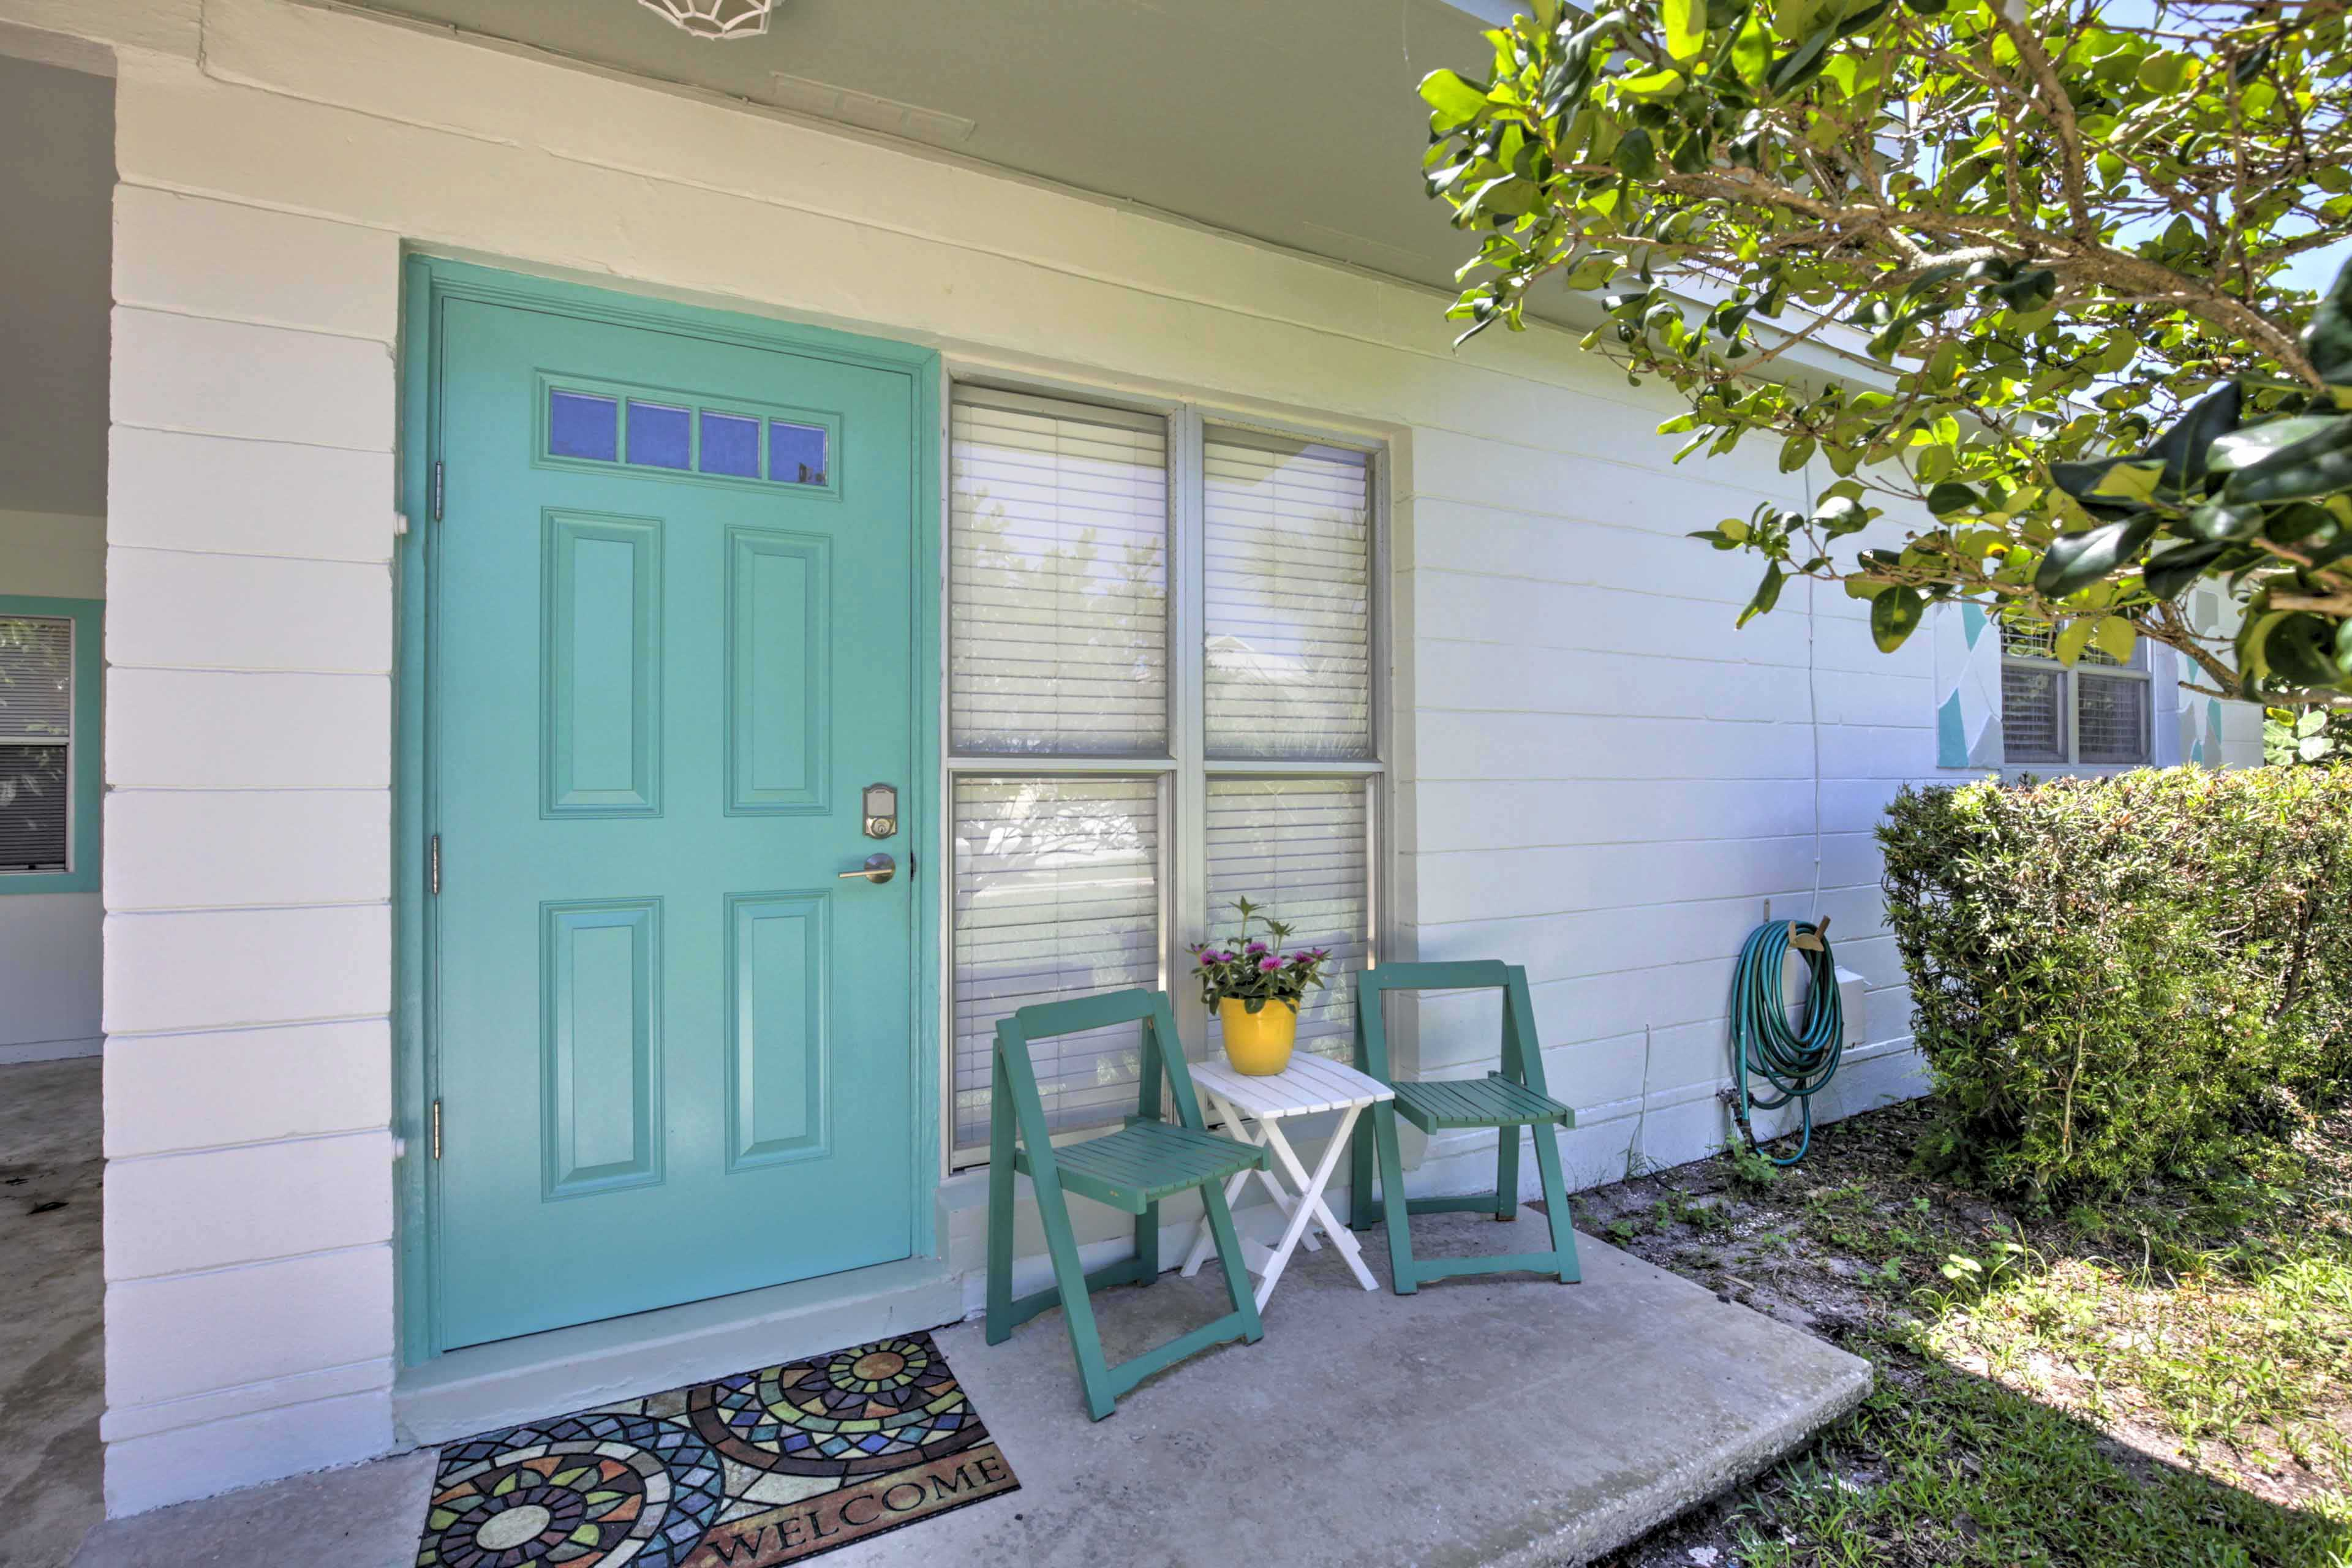 This adorable house is the perfect home base for your New Smyrna beach retreat!